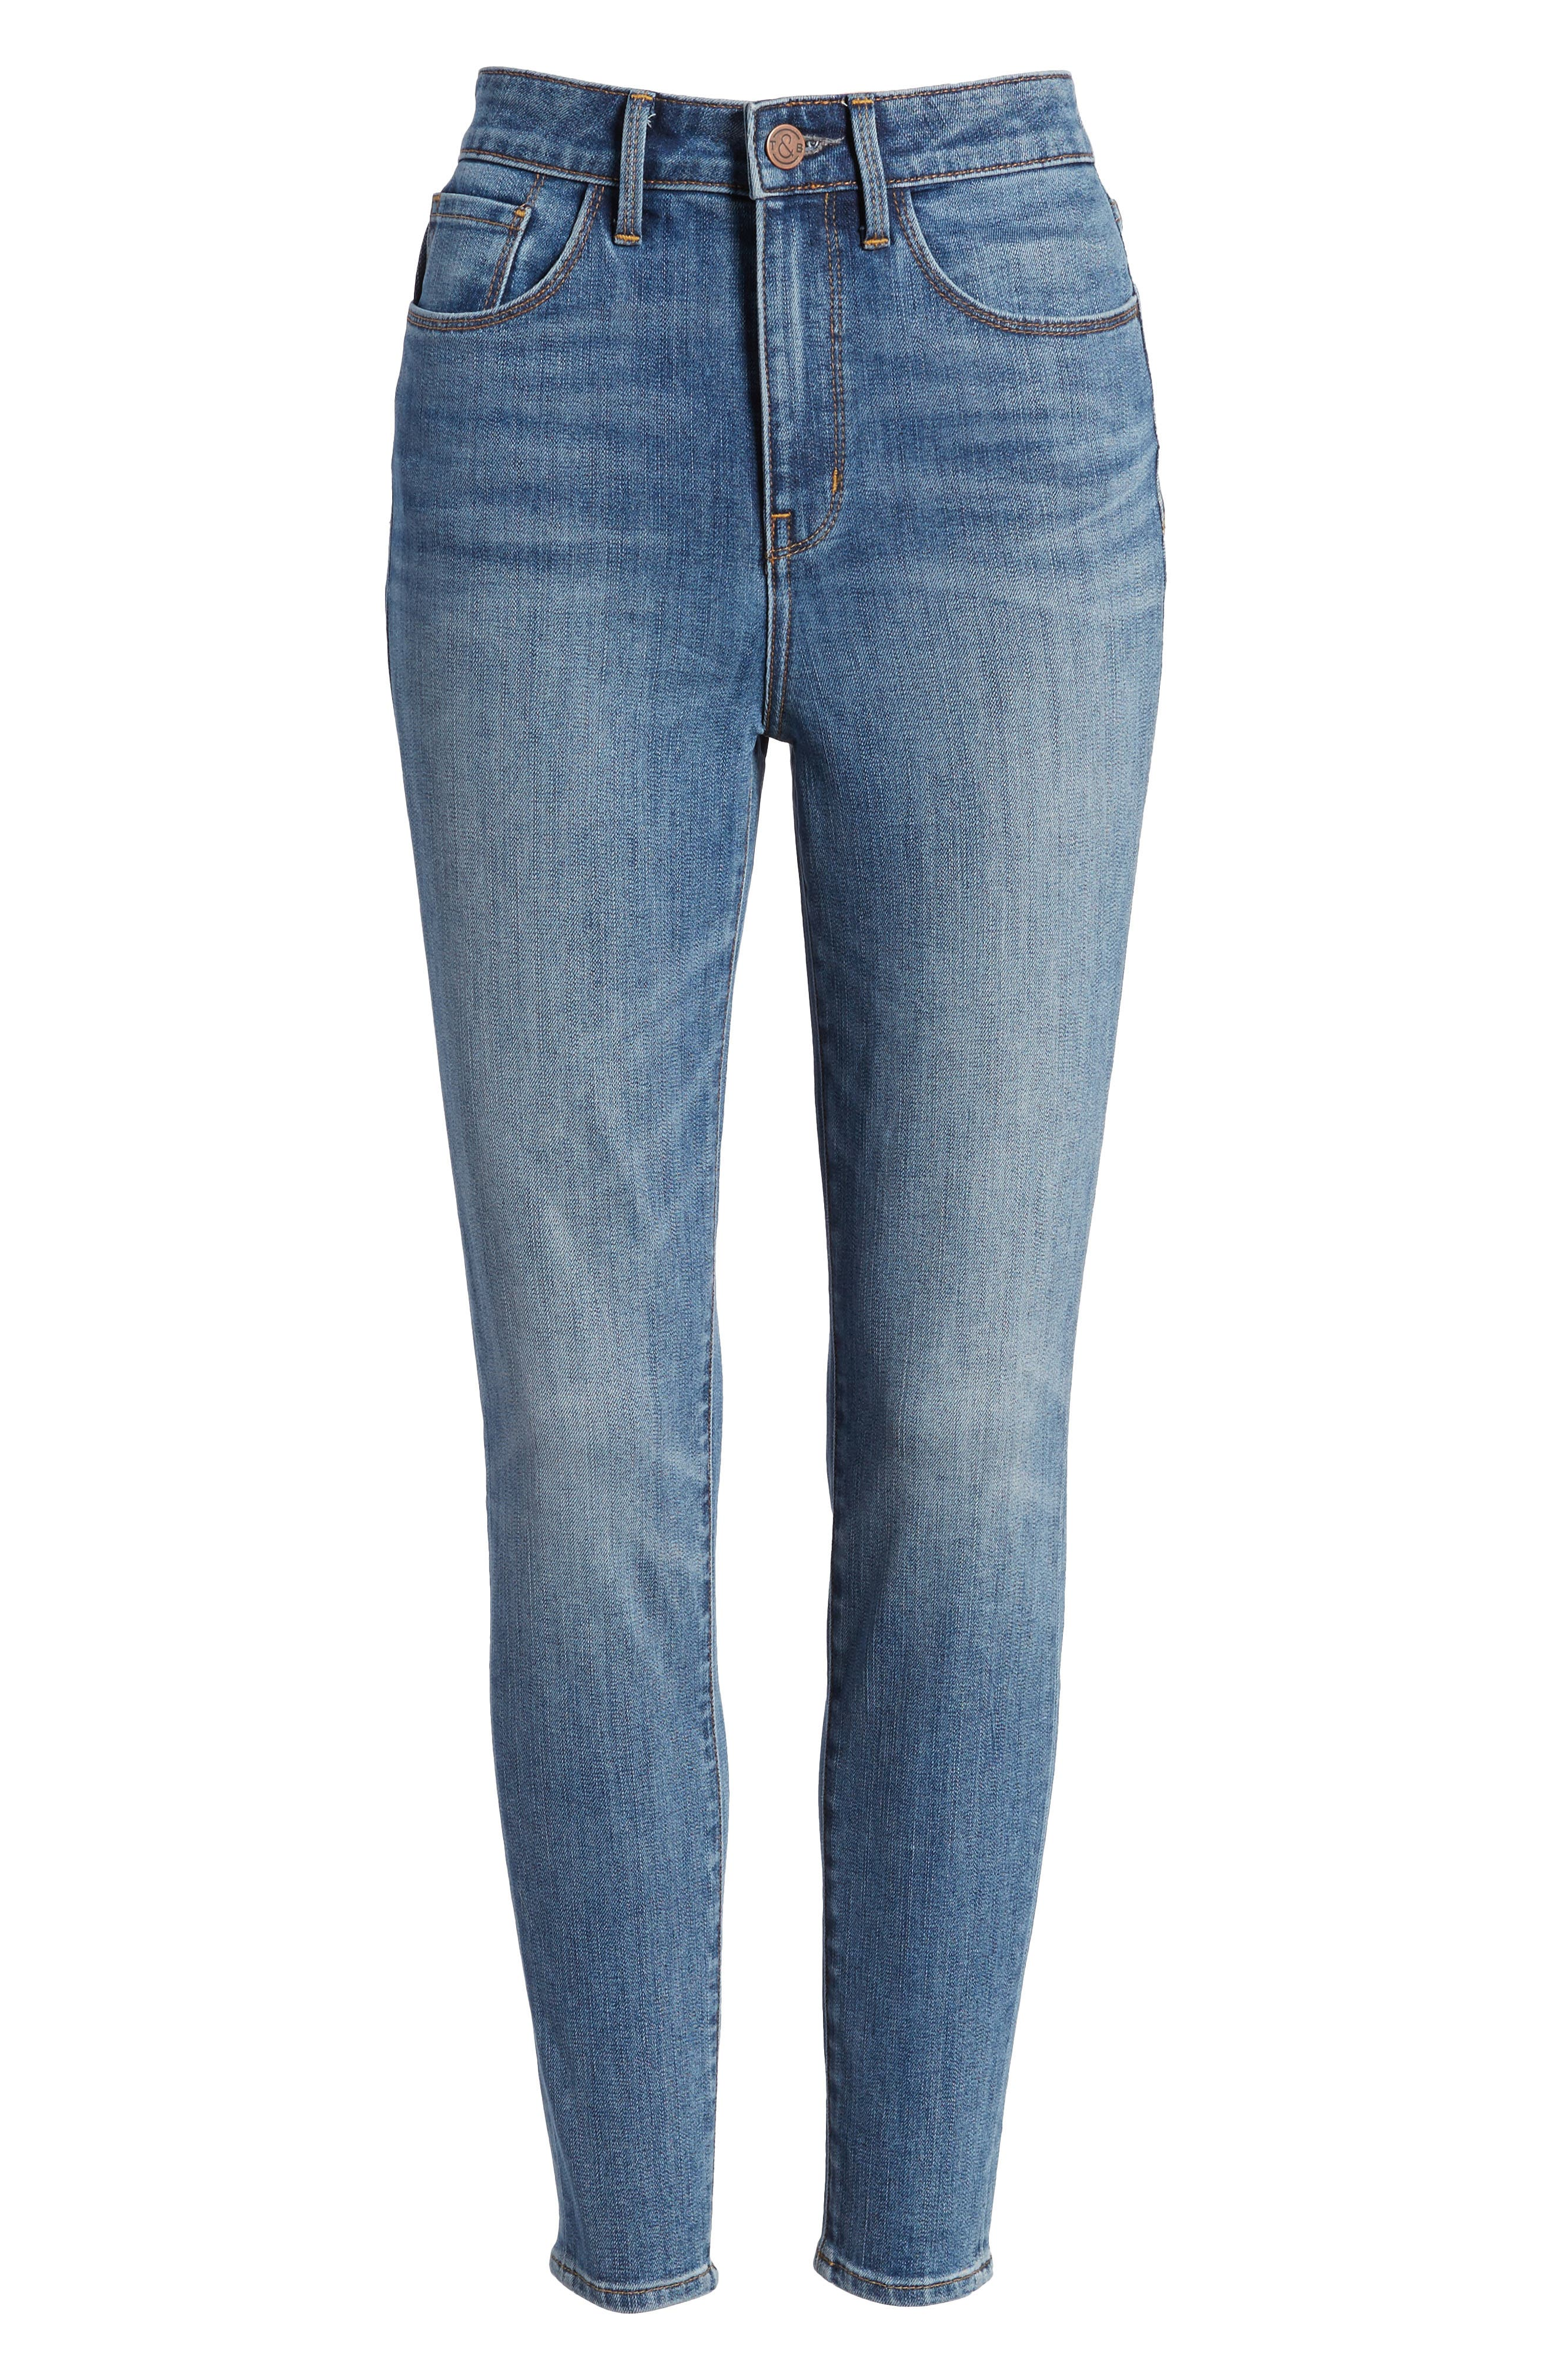 Charity High Waist Skinny Ankle Jeans,                             Alternate thumbnail 7, color,                             400